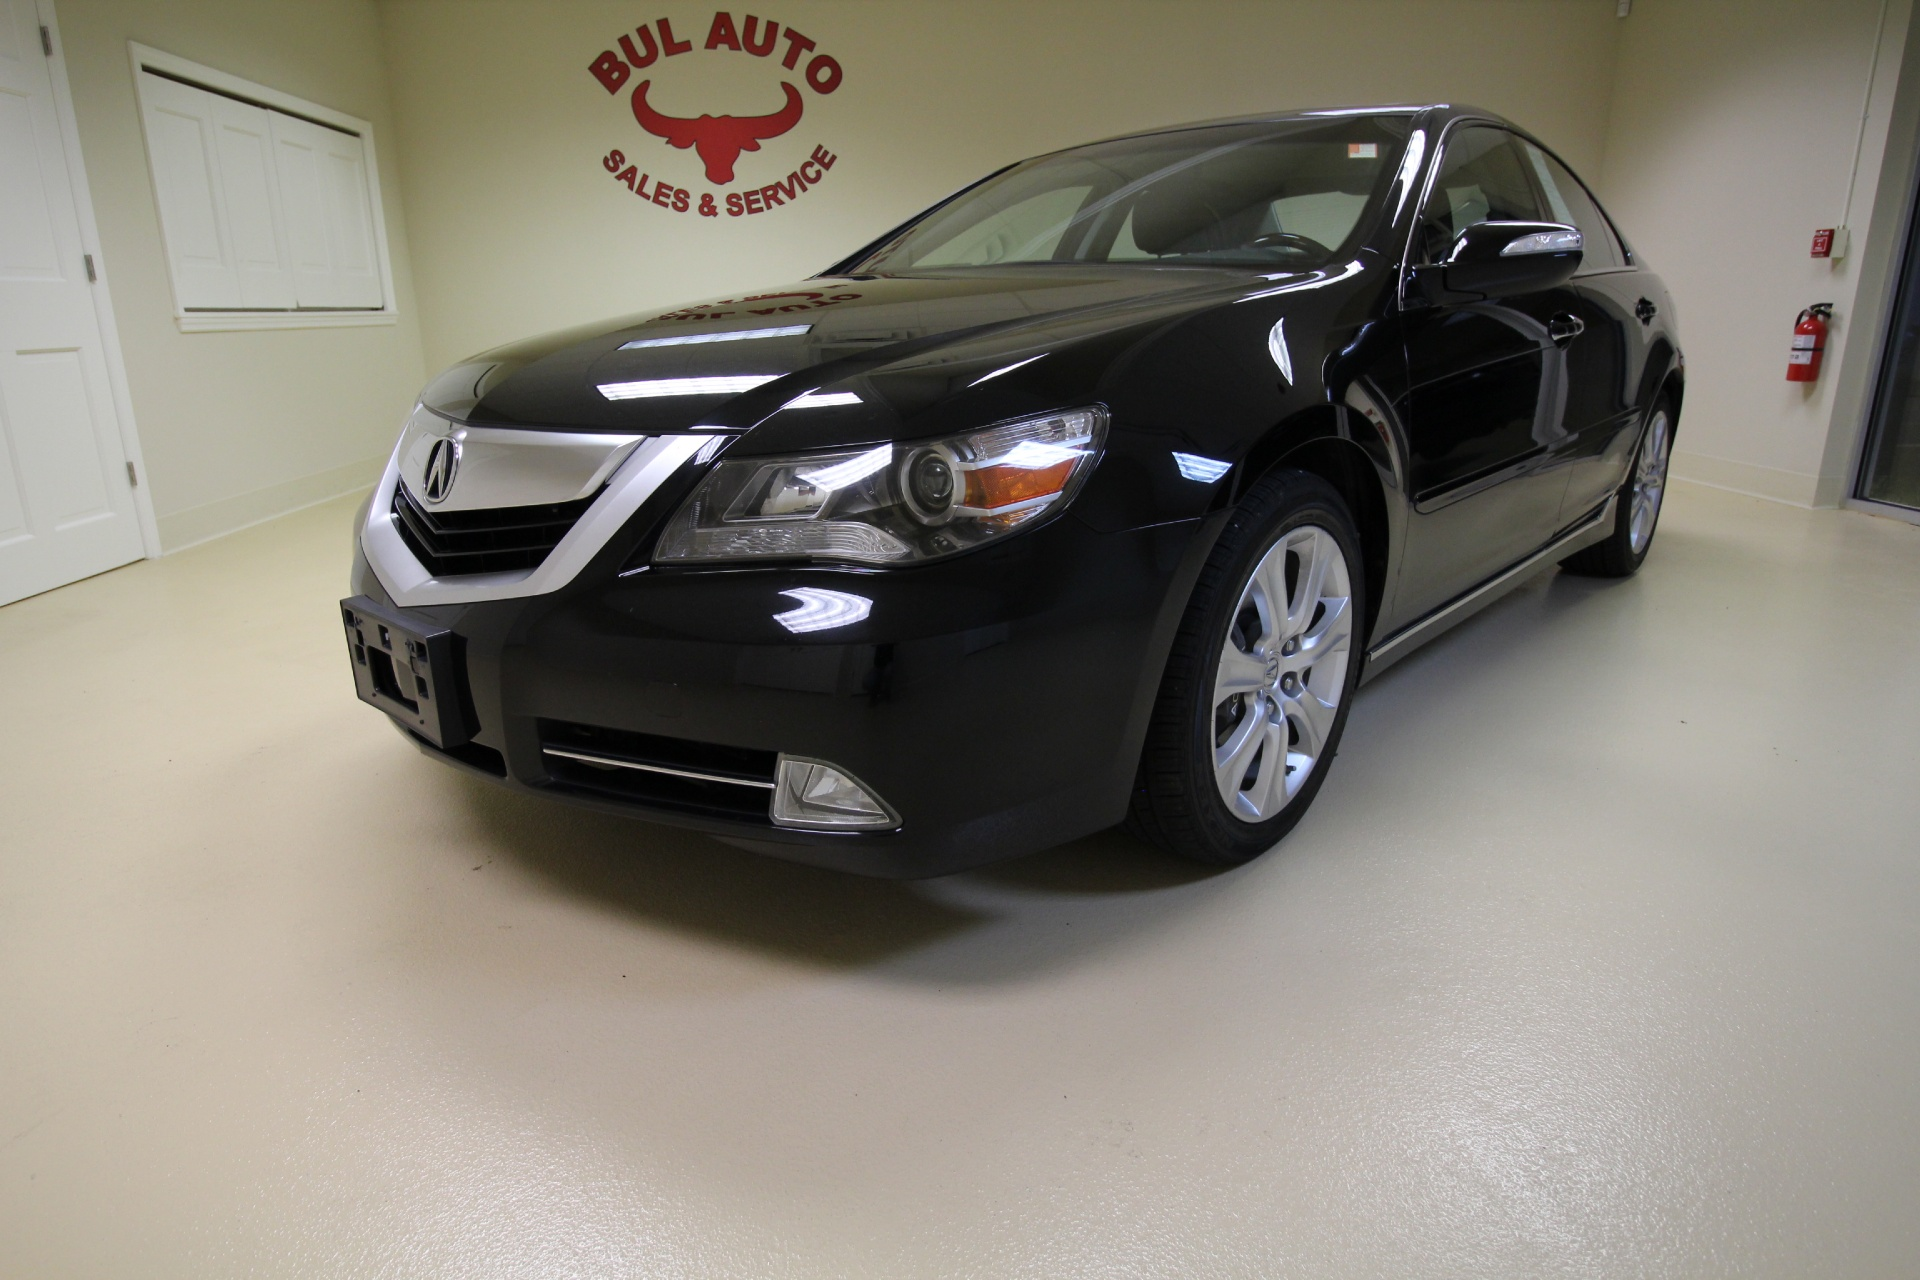 2010 acura rl sh awd w tech cmbs acc package stock 16209 for sale near albany ny ny acura. Black Bedroom Furniture Sets. Home Design Ideas